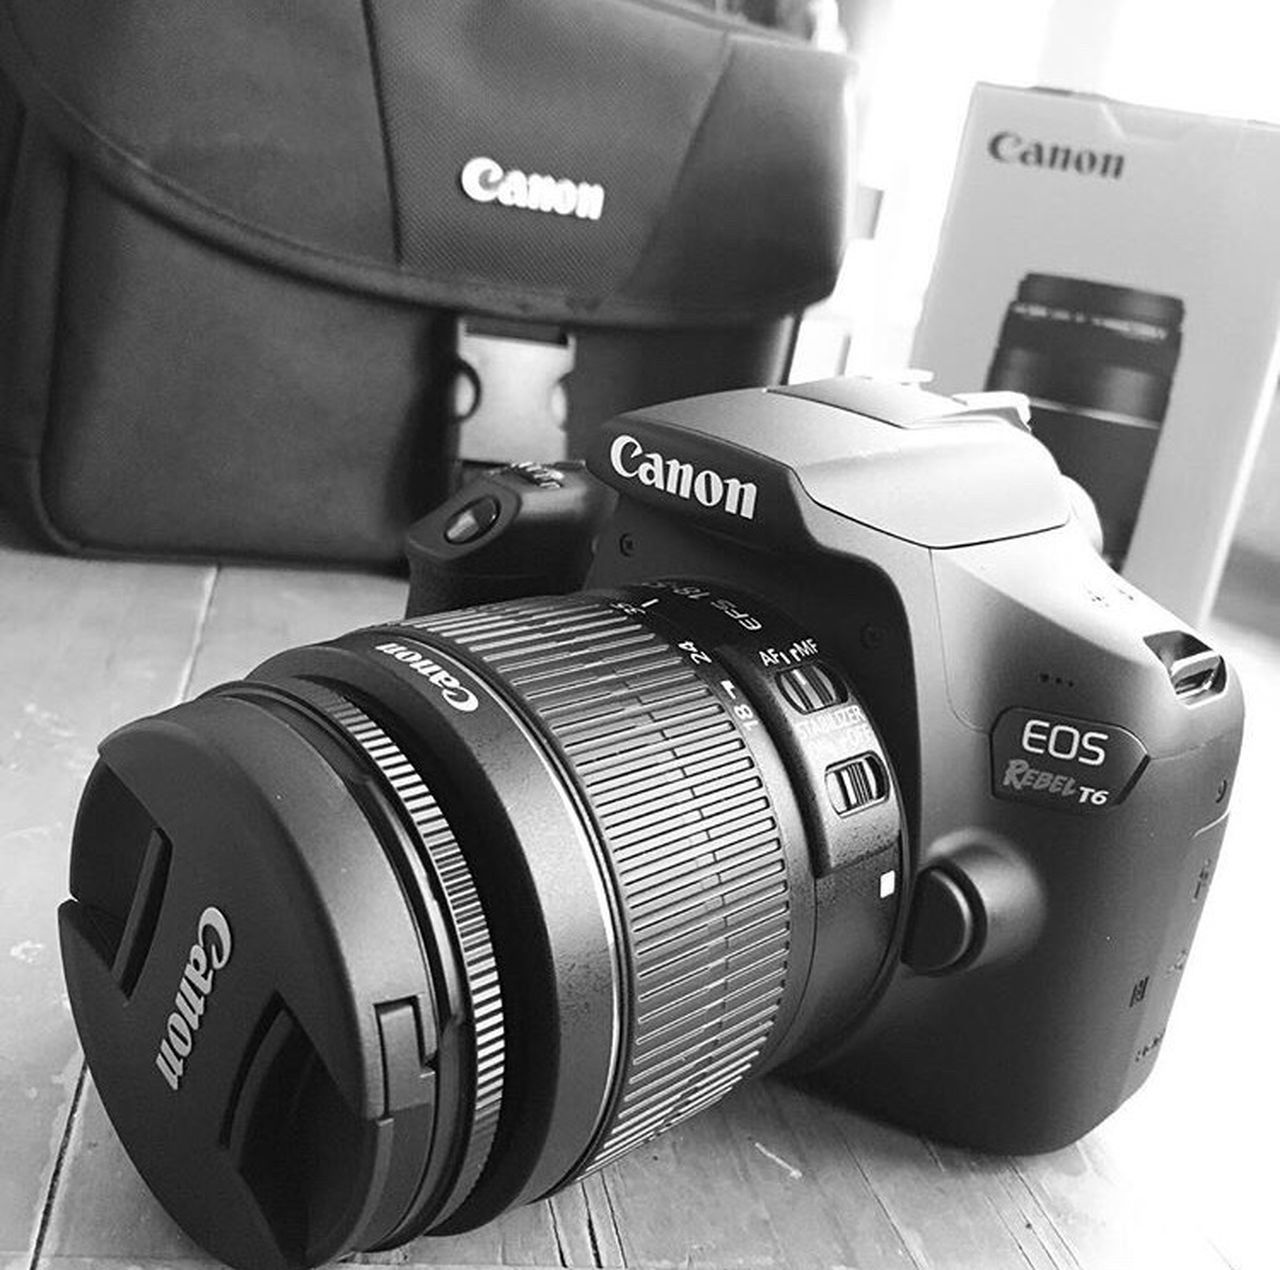 photography themes, equipment, camera - photographic equipment, technology, no people, indoors, close-up, day, digital single-lens reflex camera